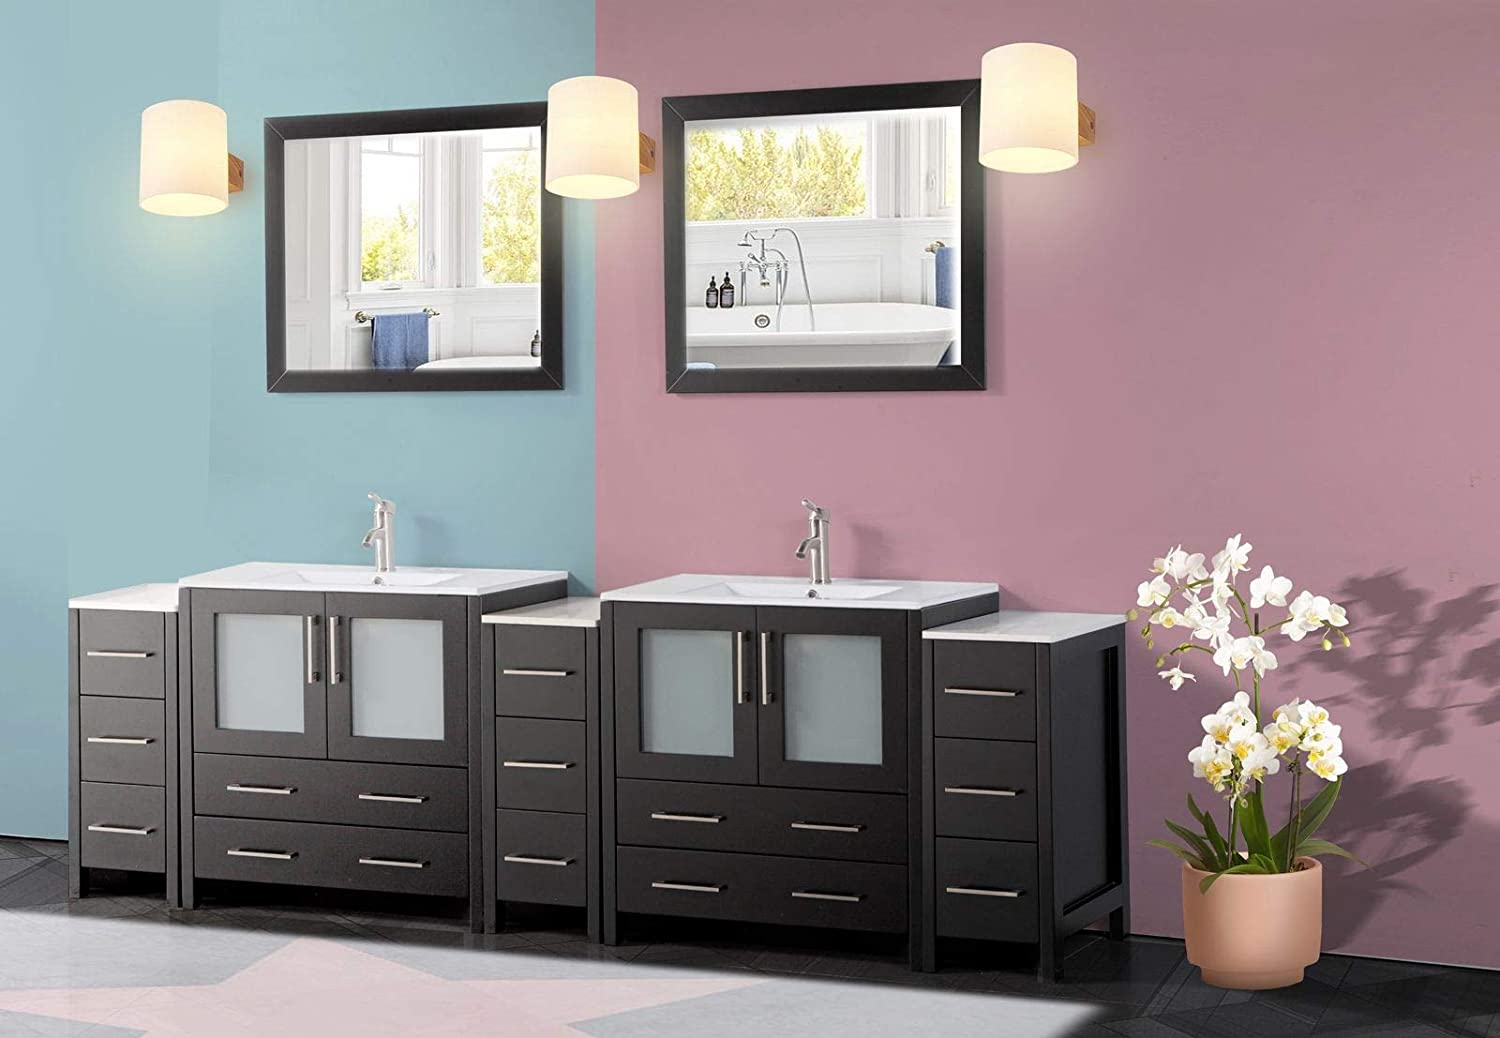 Amazon Com Vanity Art 96 Inch Double Sink Modern Bathroom Vanity Compact Set 2 Shelves 13 Drawers Ceramic Top Under Mount Sink Bathroom Cabinet With Two Free Mirrors Va3030 96 E Kitchen Dining